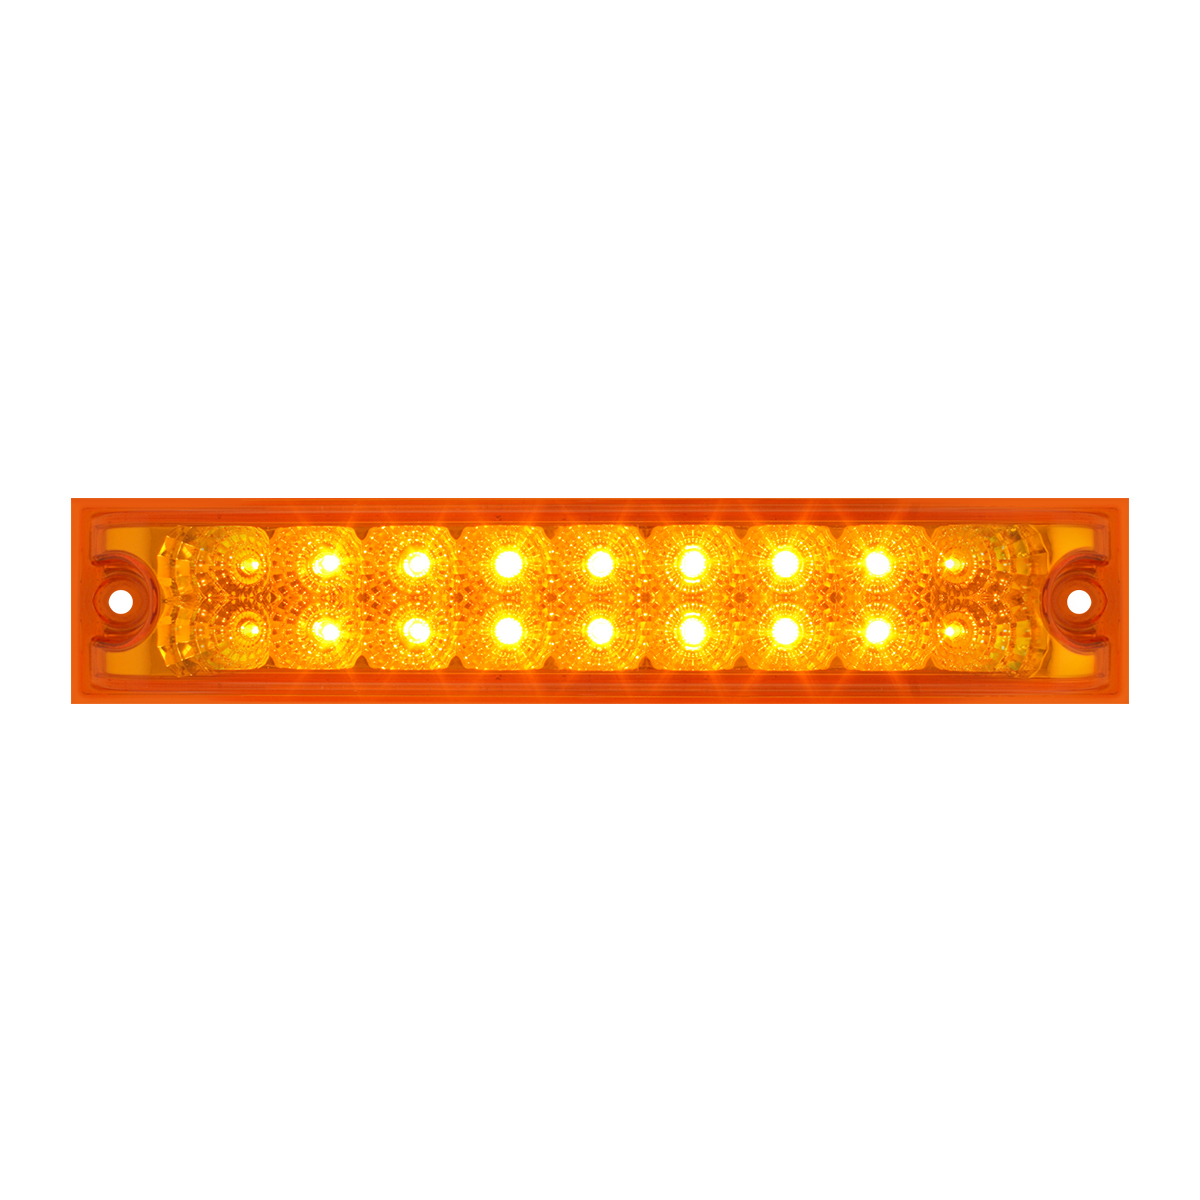 "76480 10"" Spyder LED Light Bar"